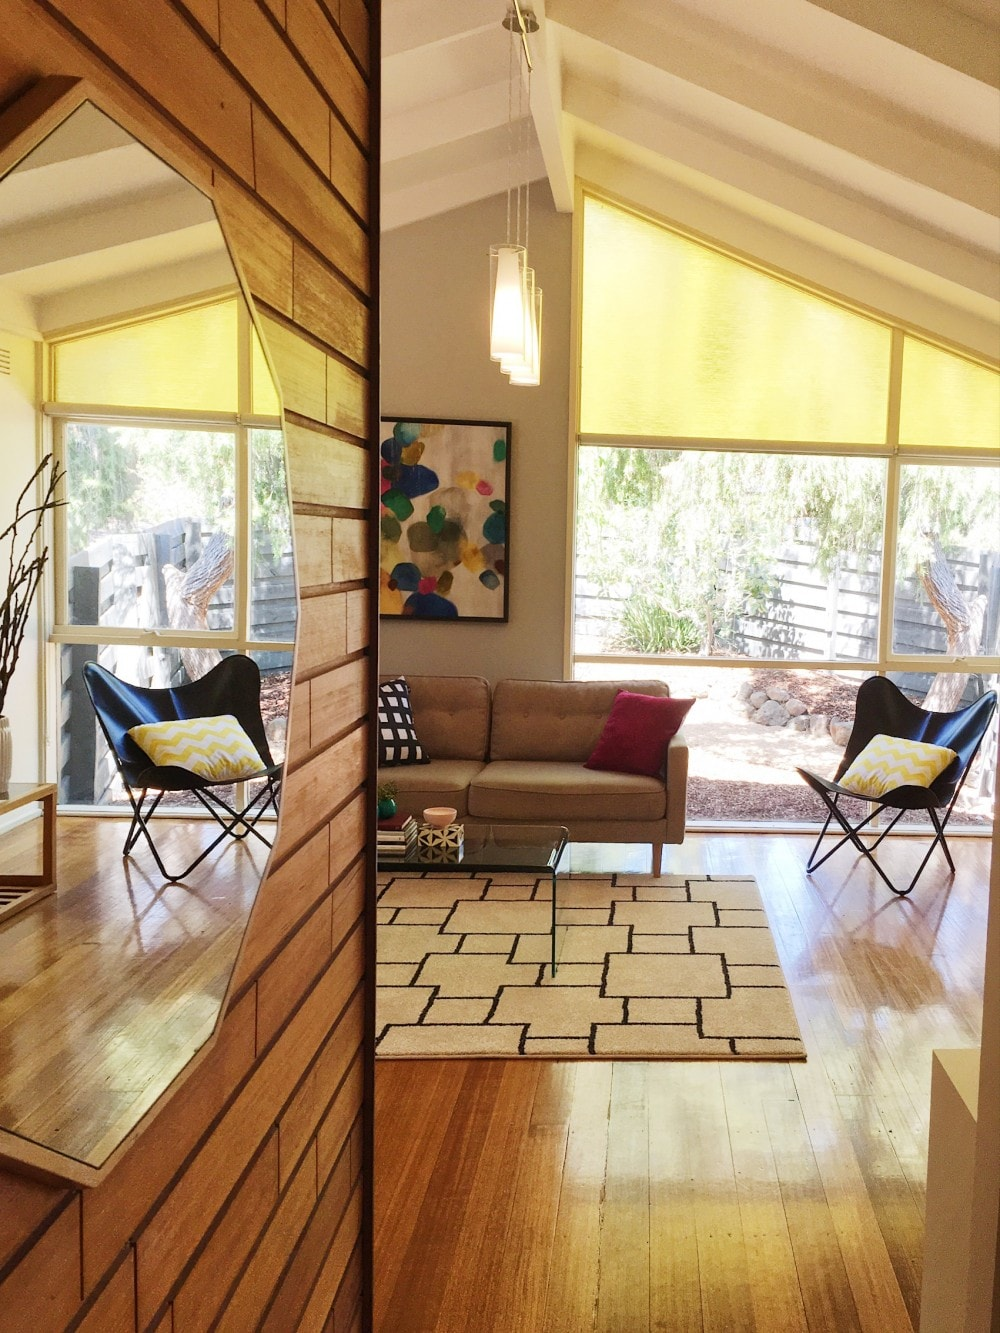 Living room in retro home property styling interior design melbourne